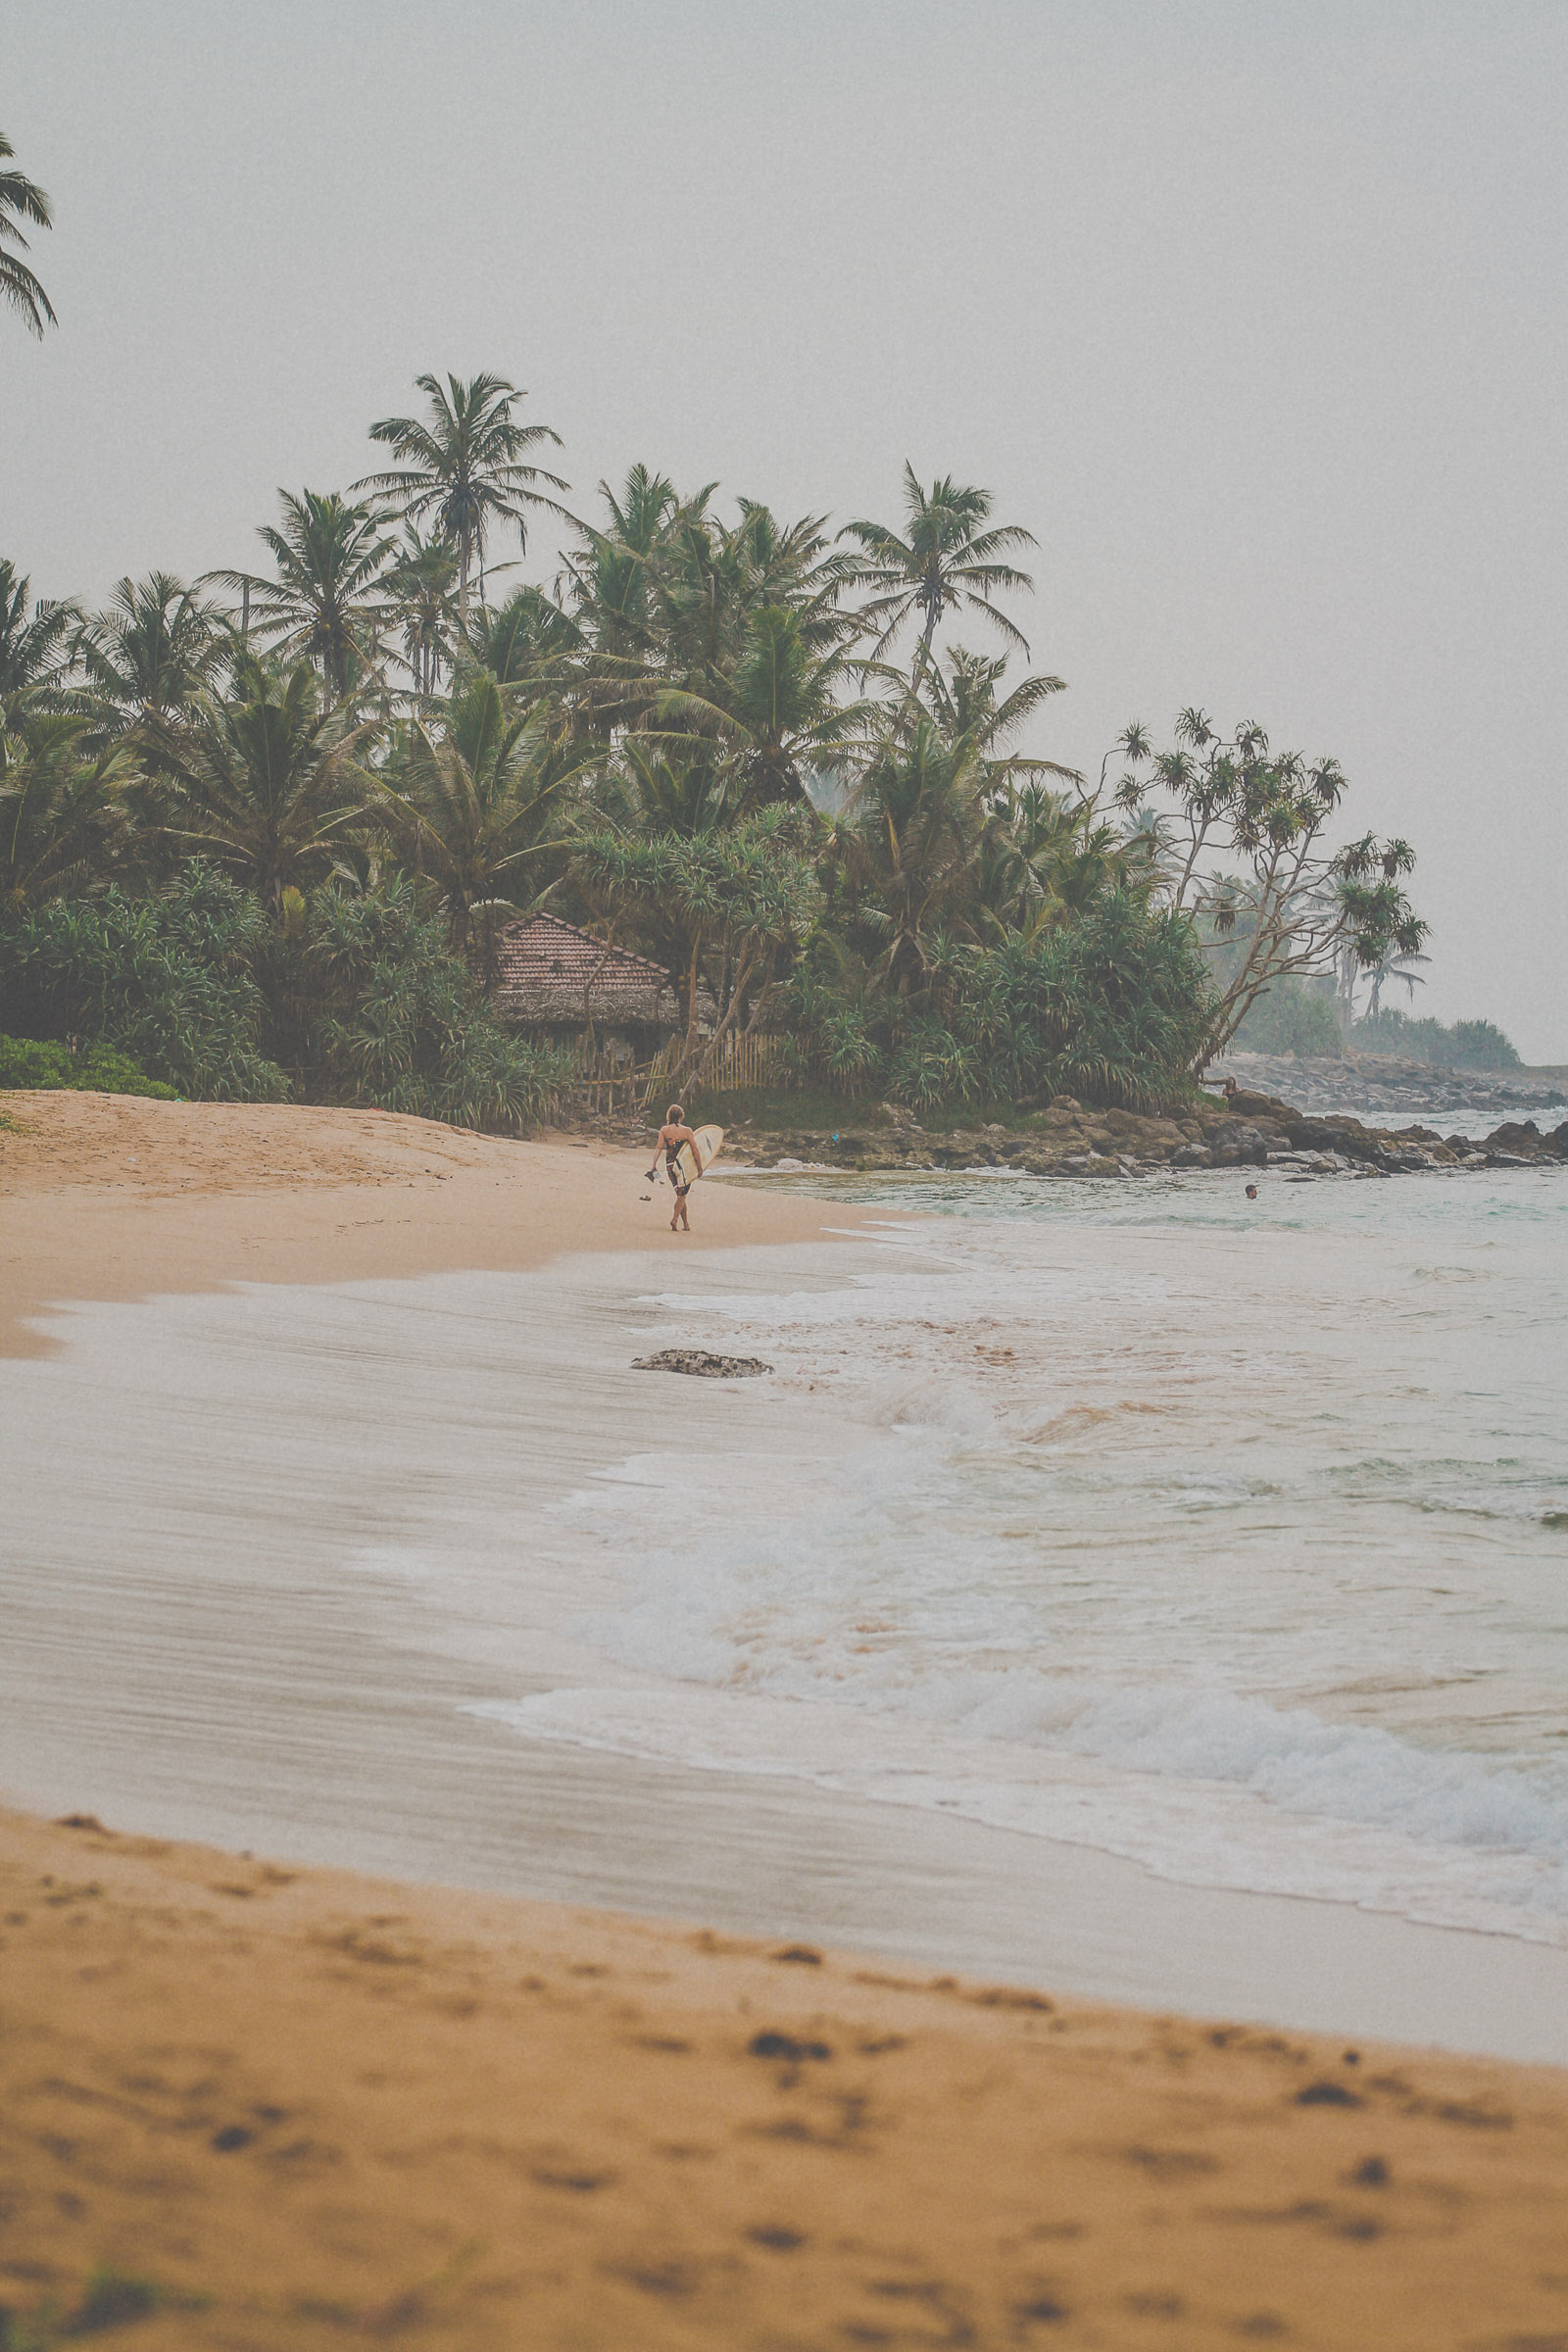 Sri Lanka-Hikkaduwa-Midigama-Aragum Bay-Sunshinestories-surf-travel-blog-IMG_4273-2